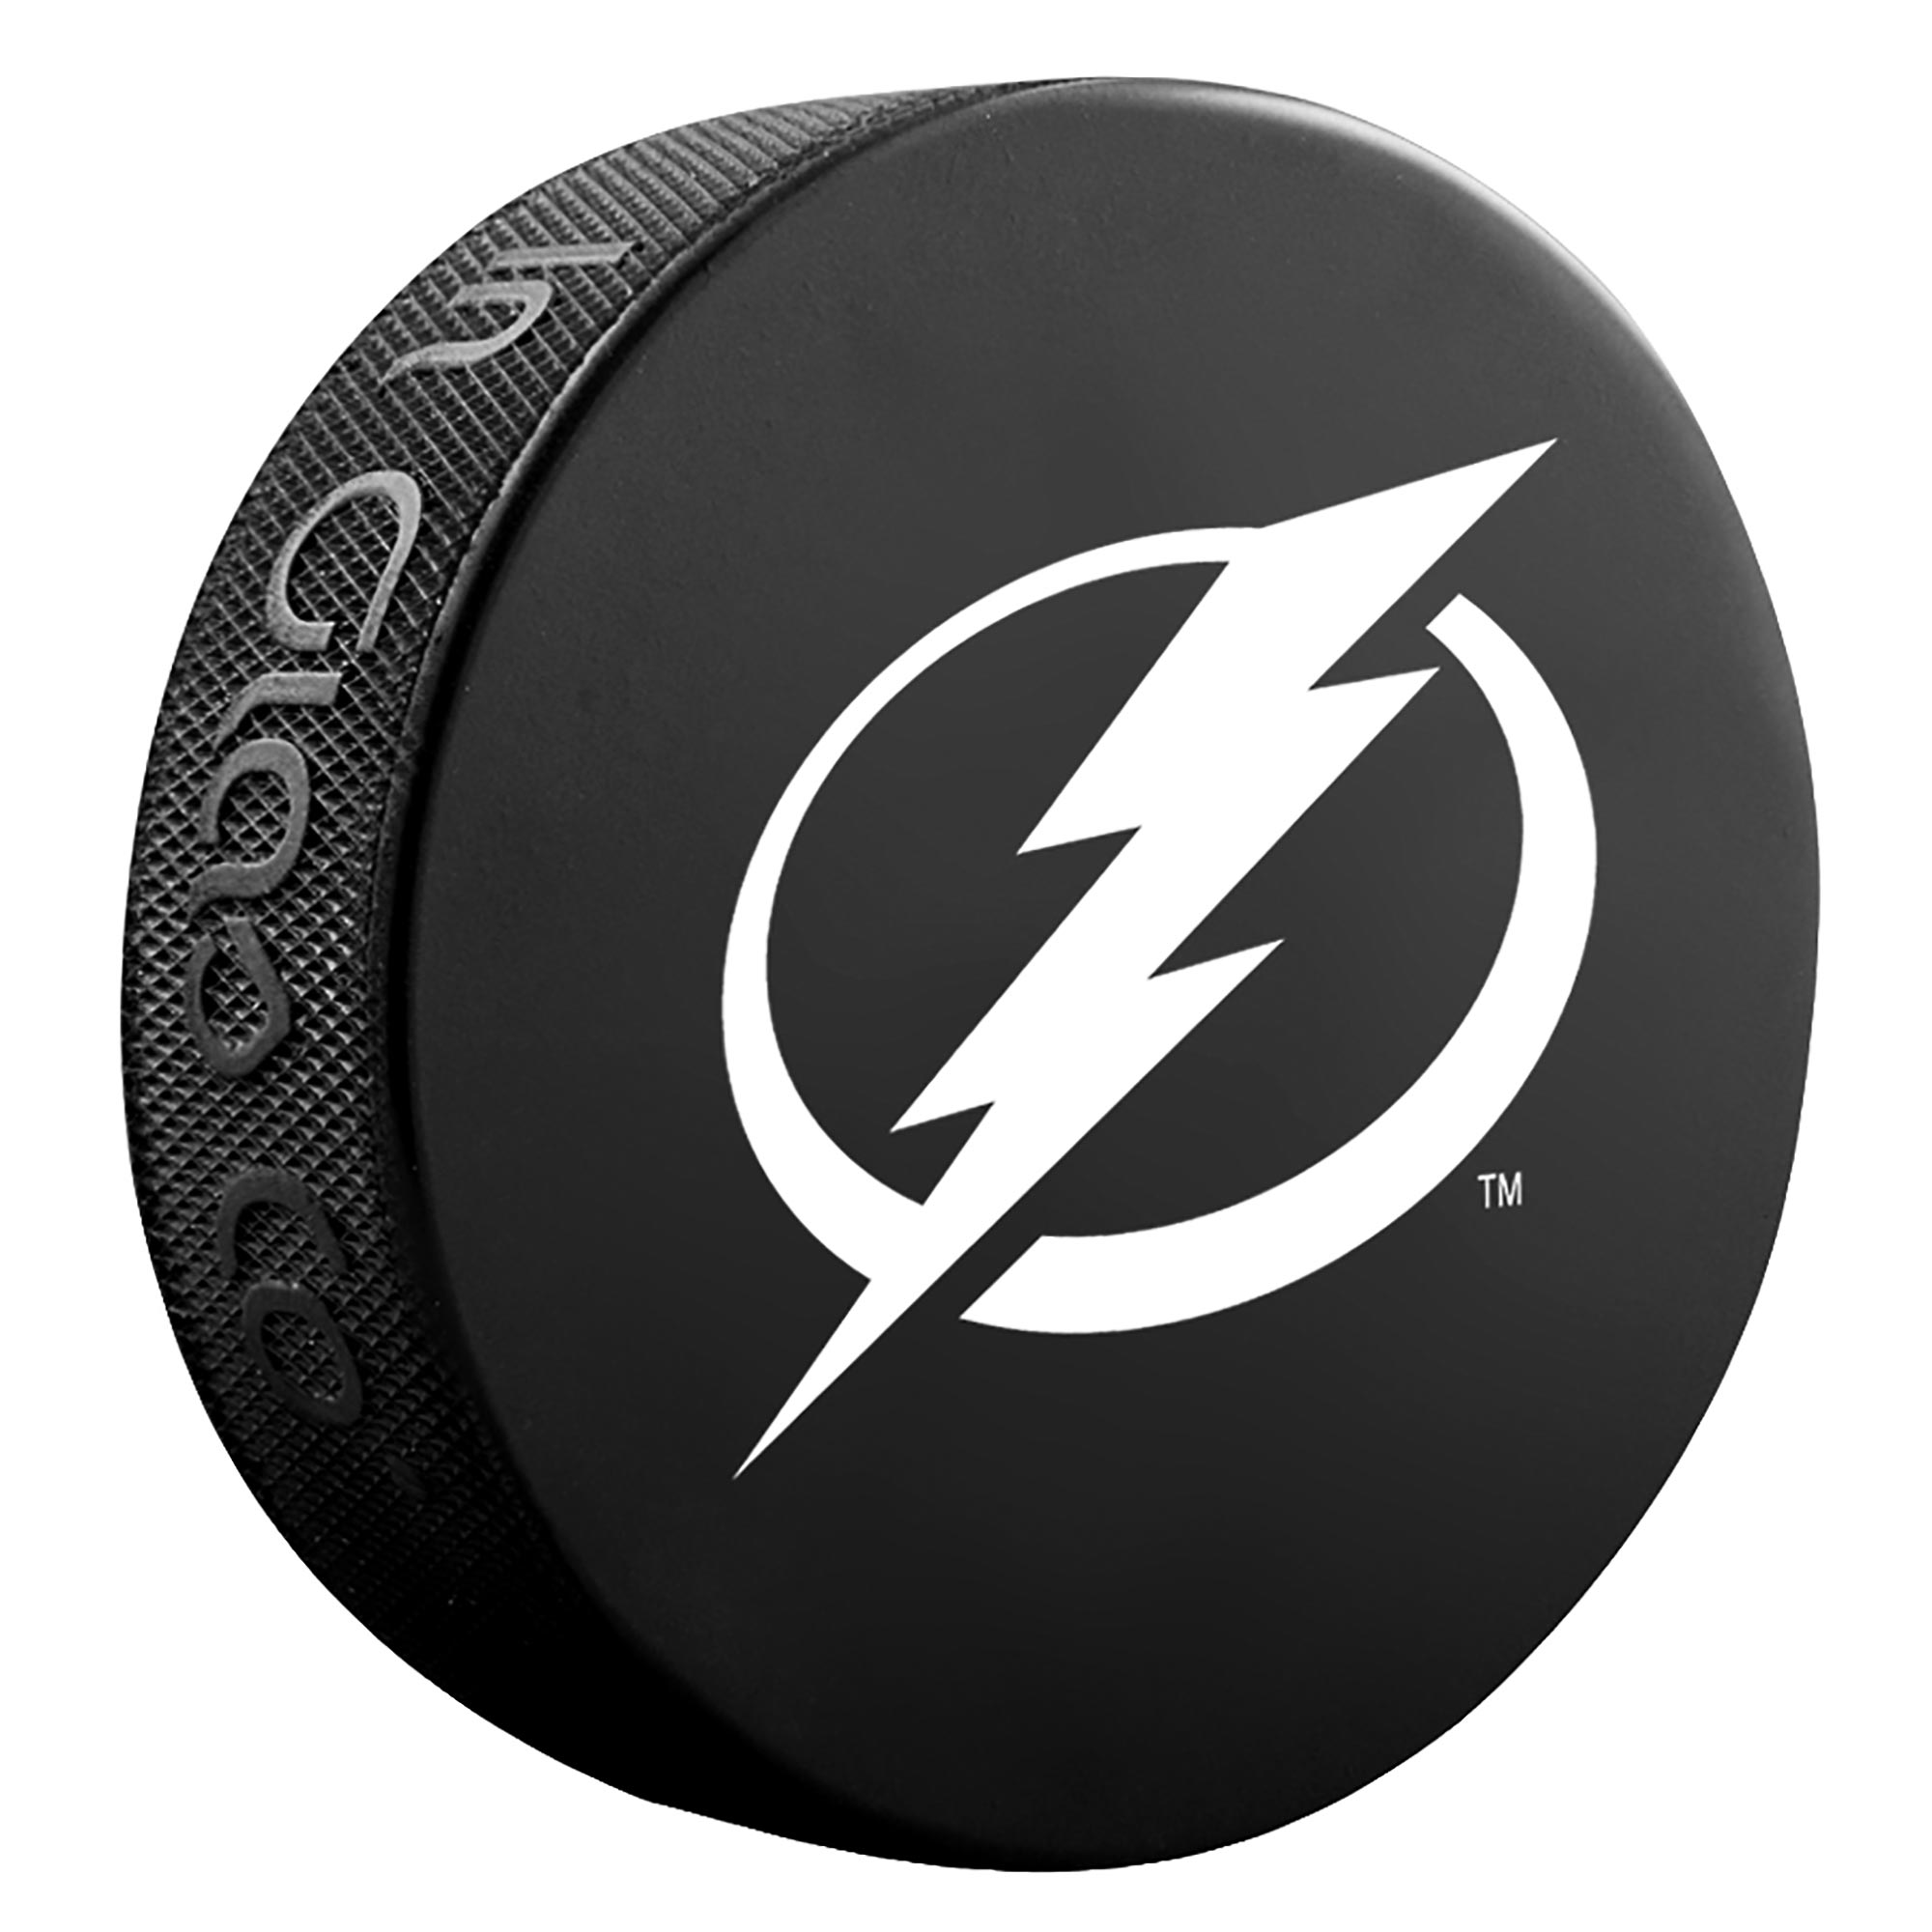 Tampa Bay Lightning Team Puck